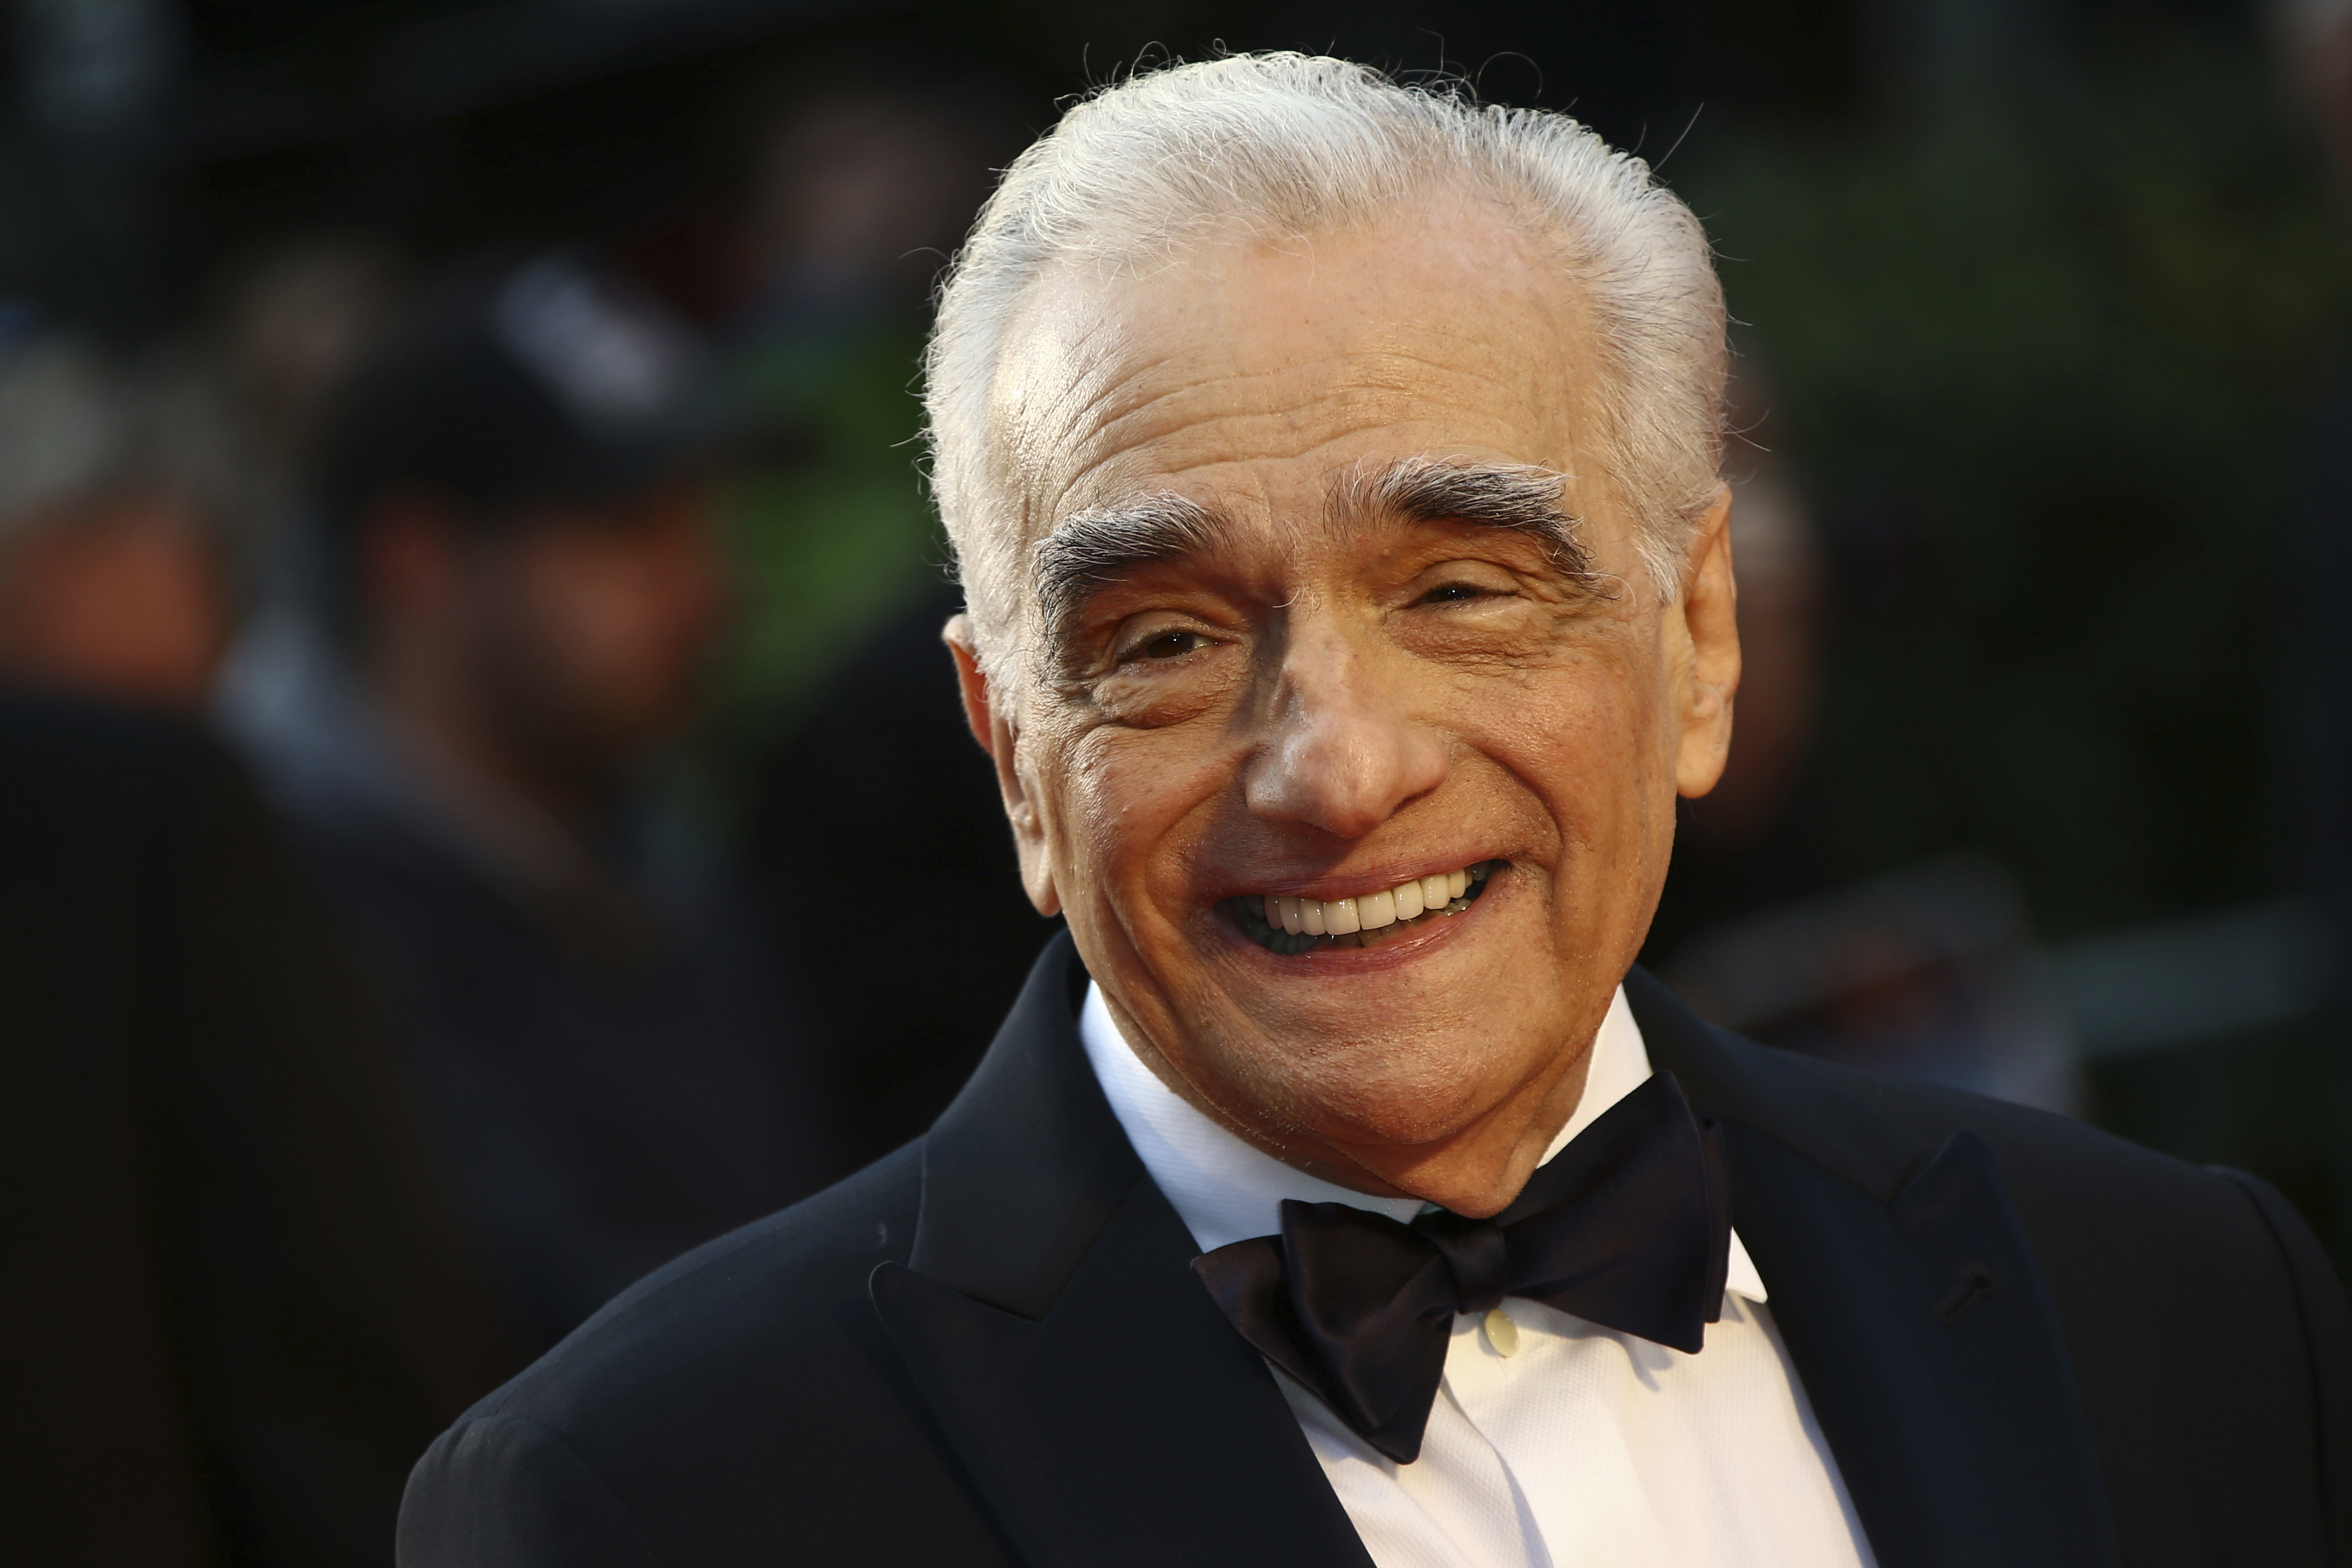 Martin Scorsese Discusses Cinema Being 'Devalued' as 'Content' in New Essay - Rolling Stone